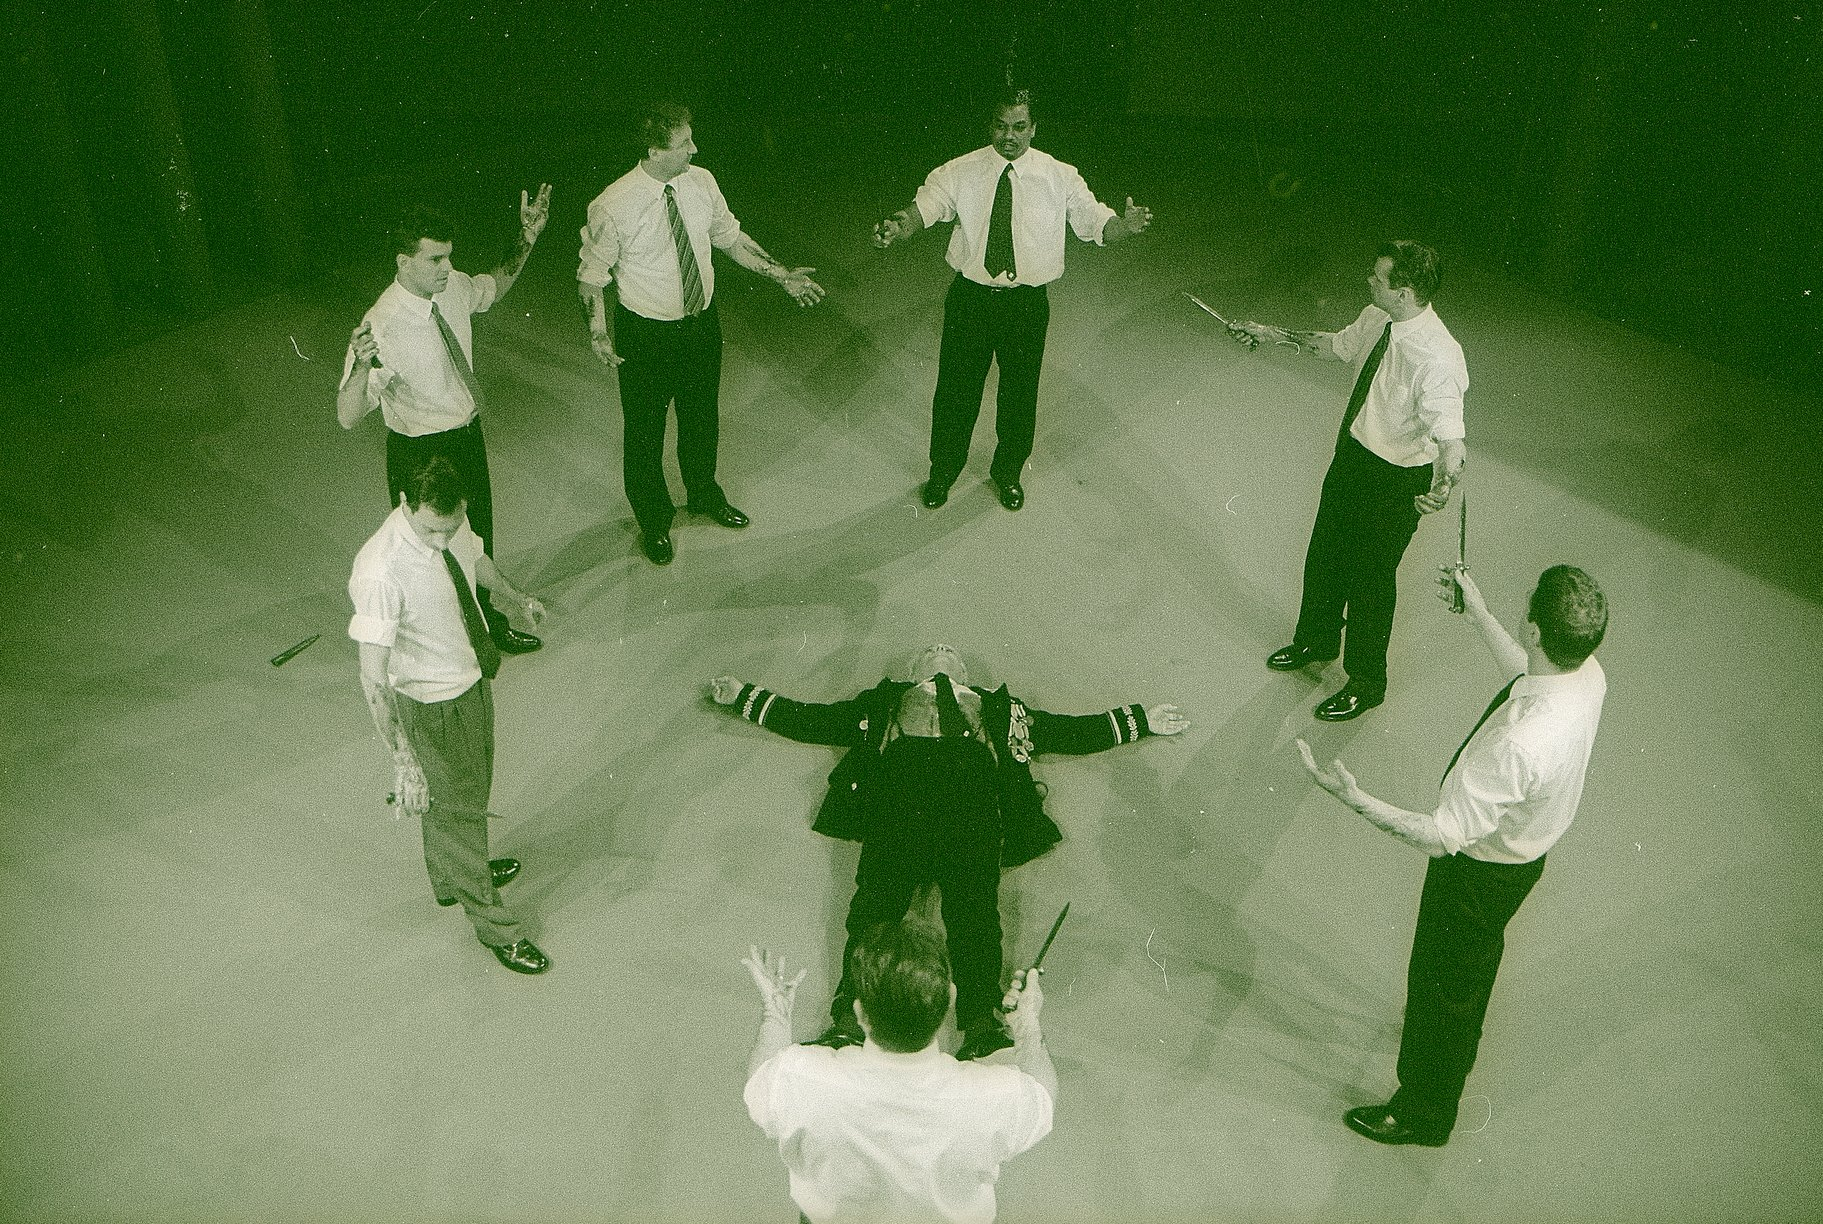 Six Conspirators stand in a circle around Julius Caesar's dead body